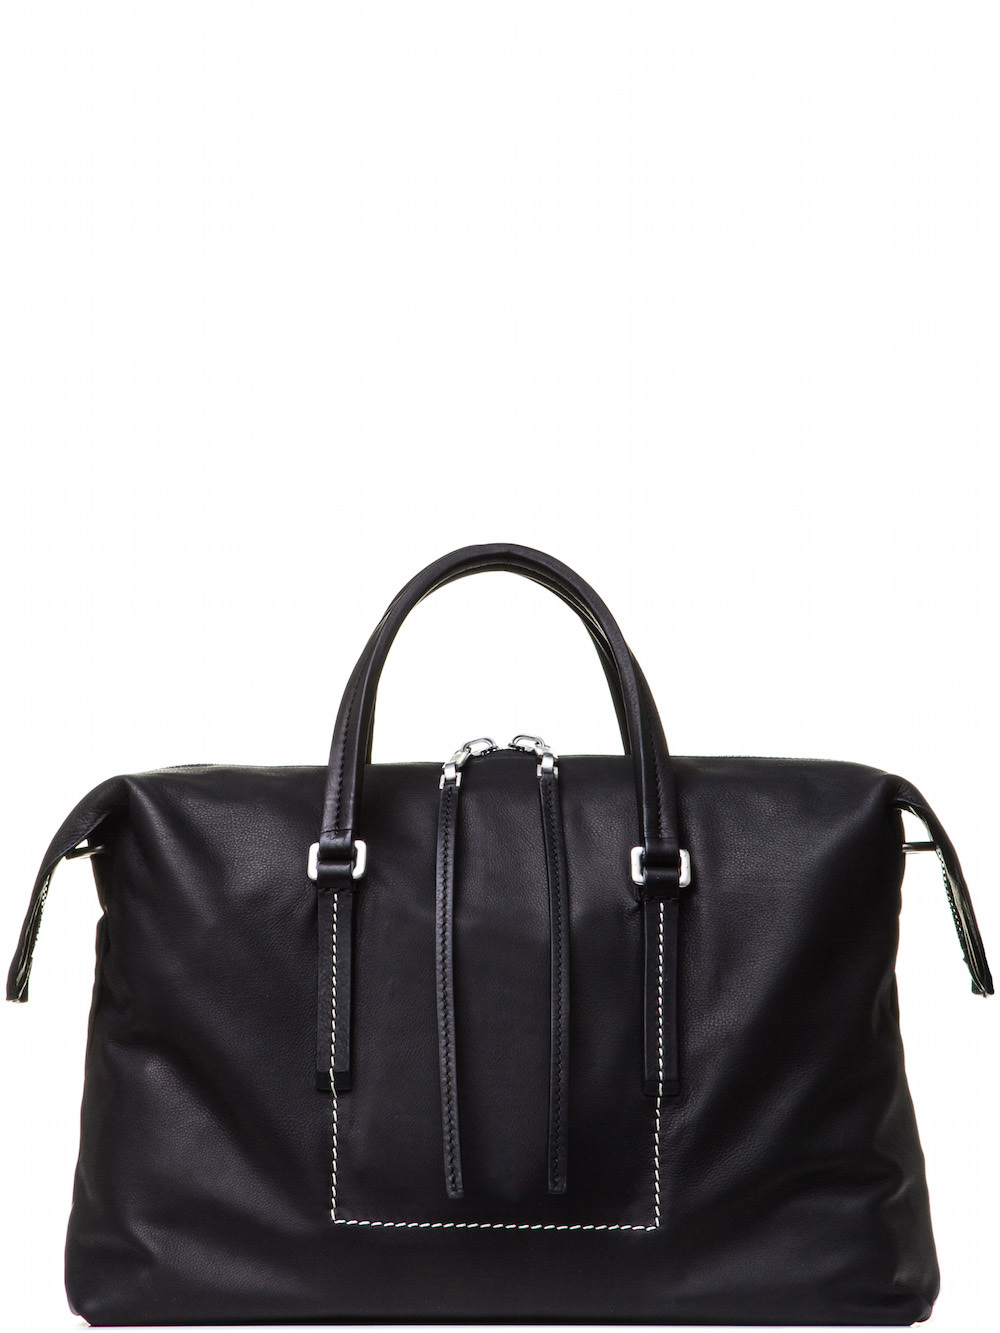 RICK OWENS CITY BAG IN BLACK GRAINY CALF LEATHER